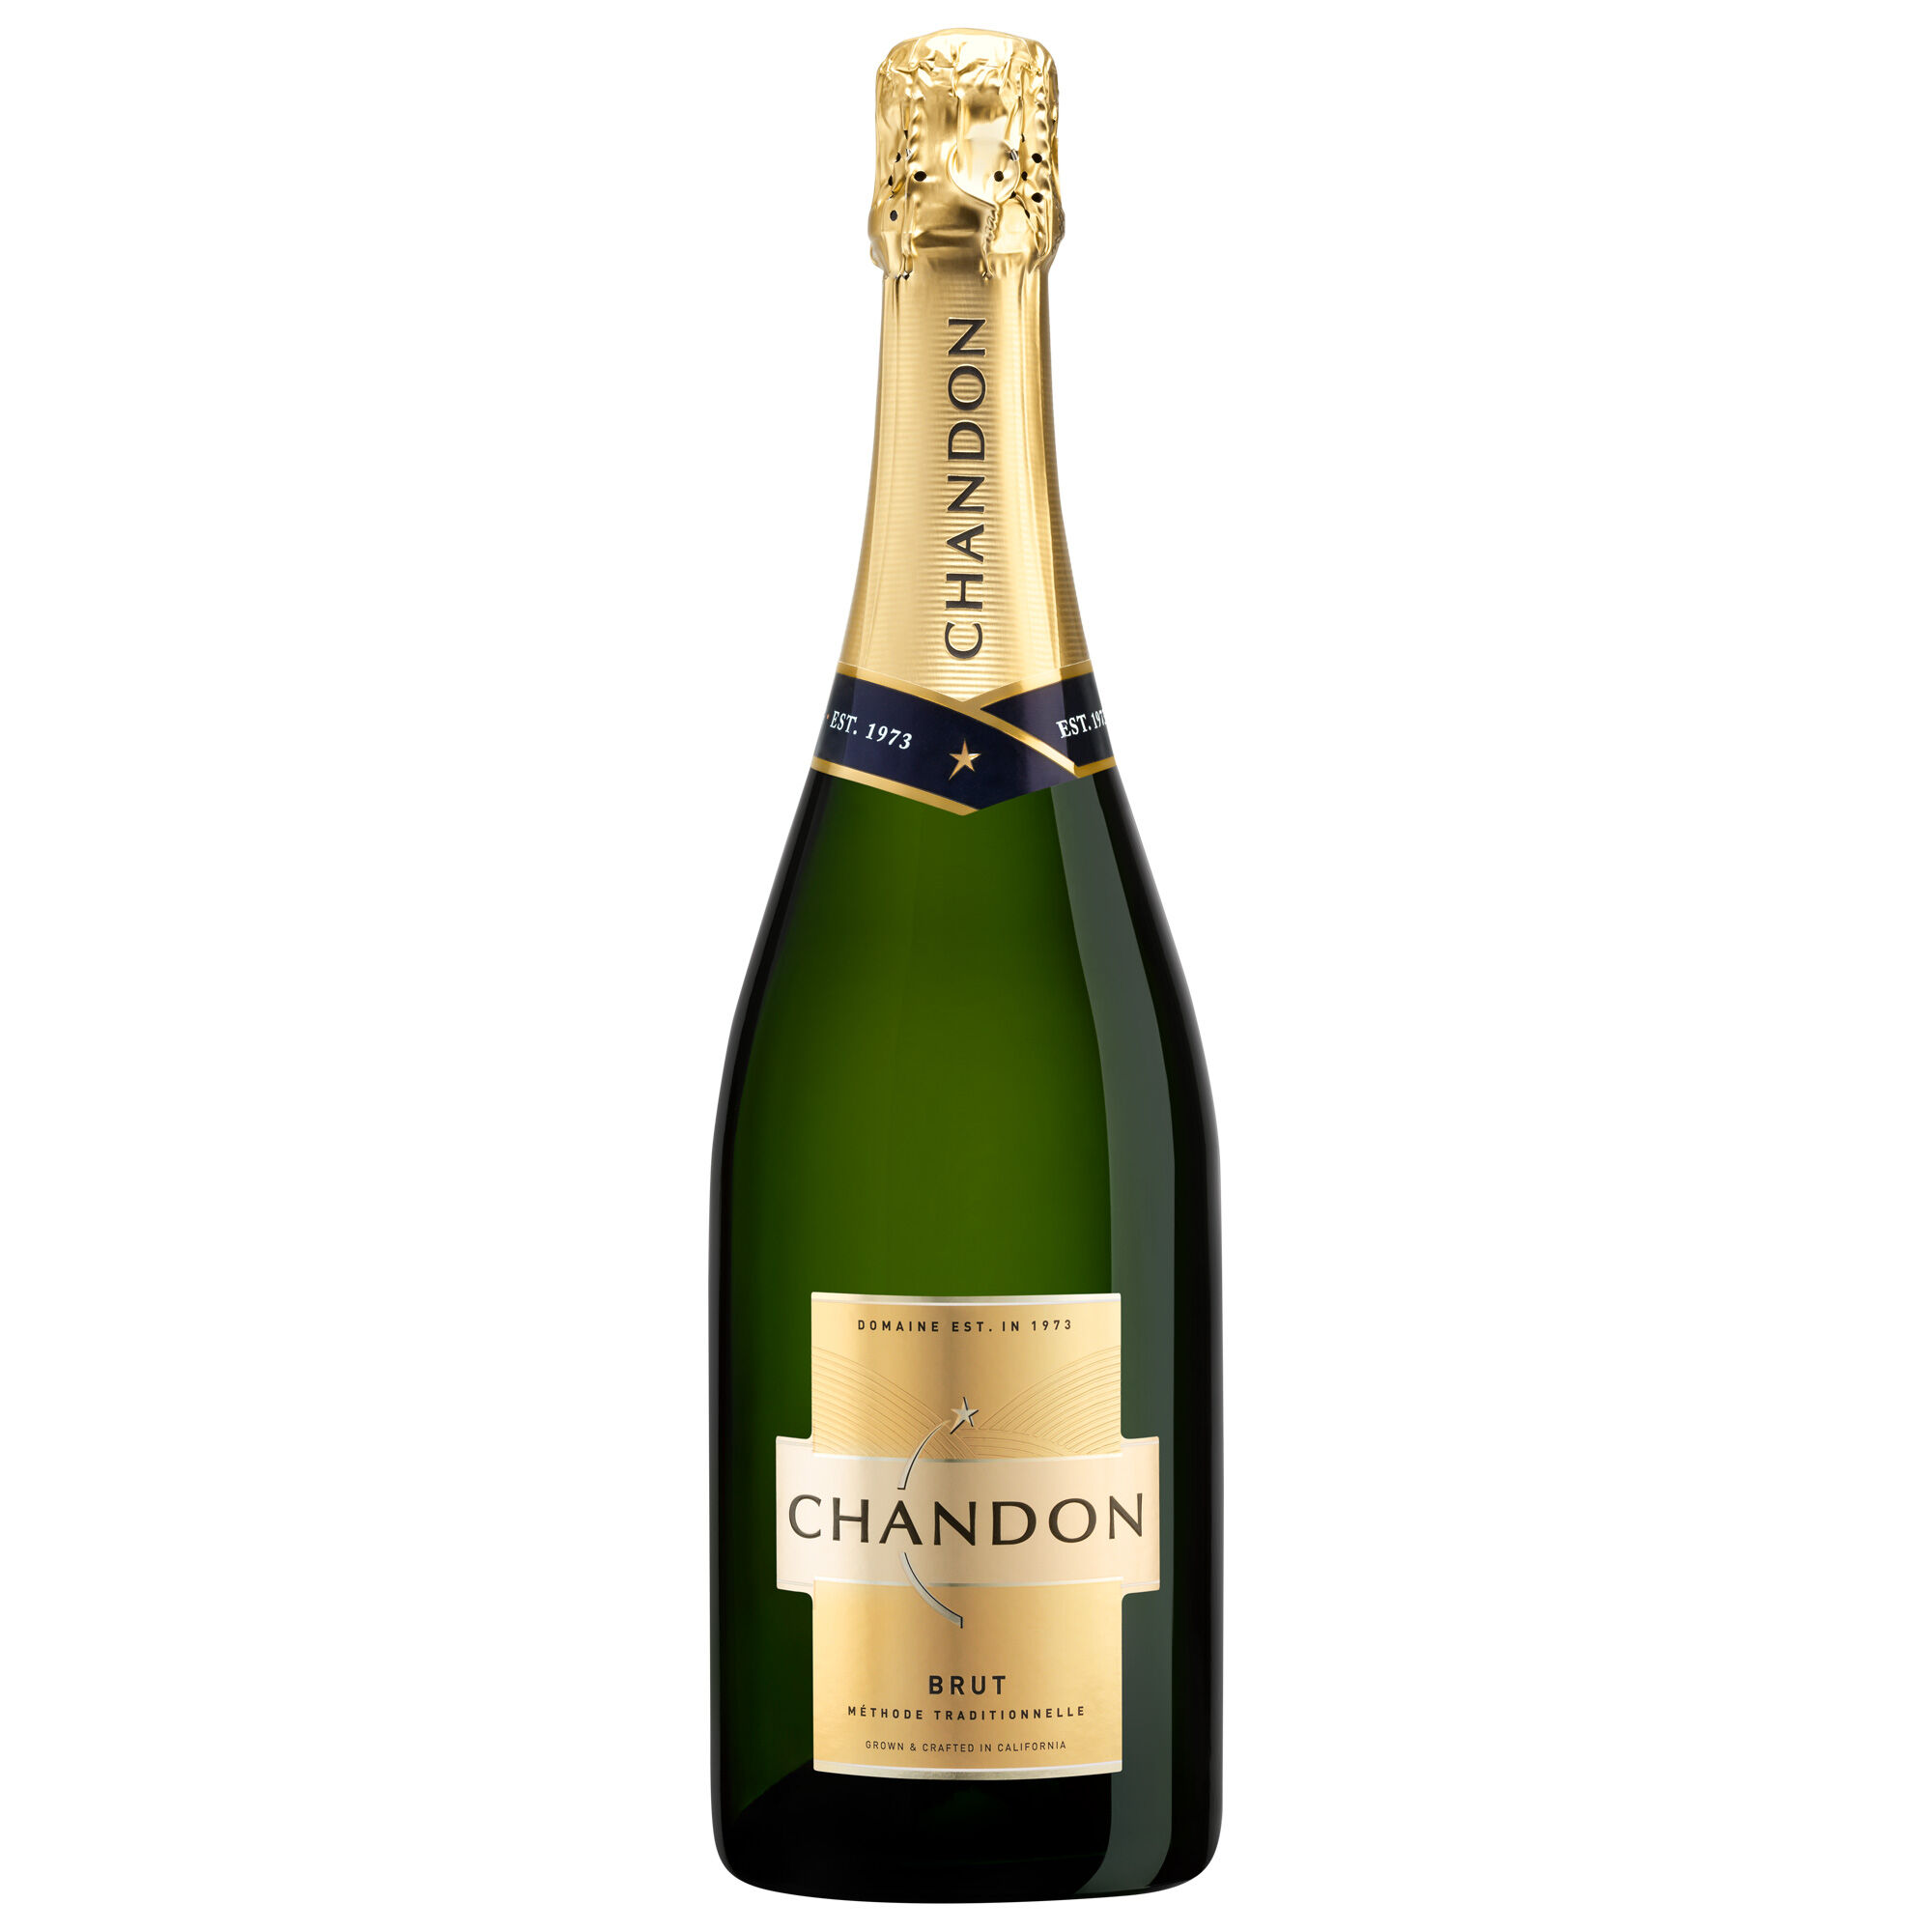 Chandon Brut Classic Library Dosage